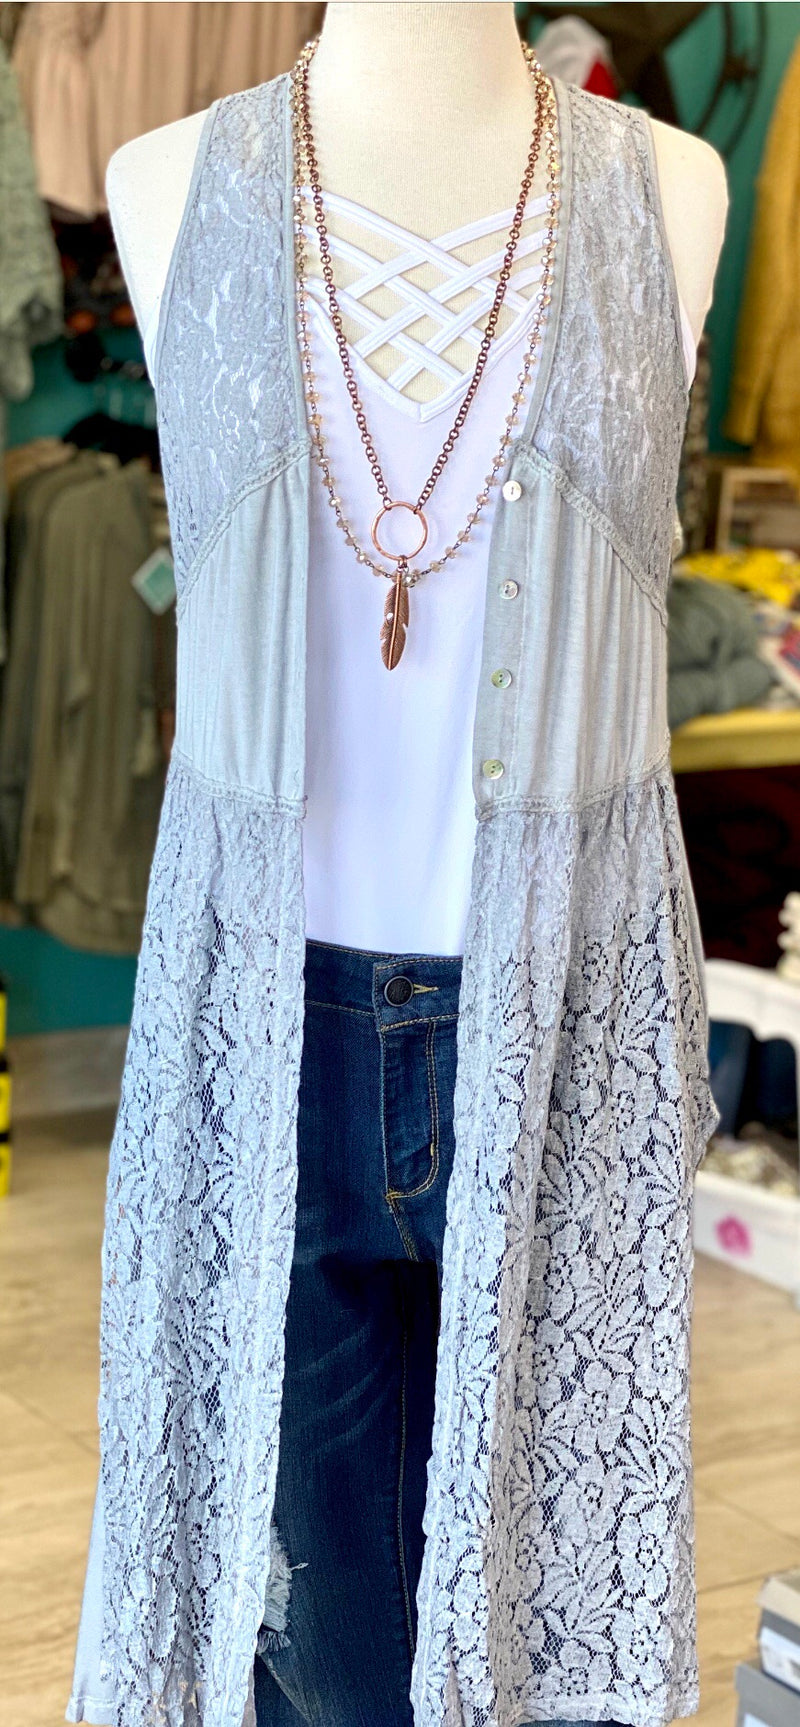 The Dolly Lace Pretty Kimono Duster Vest